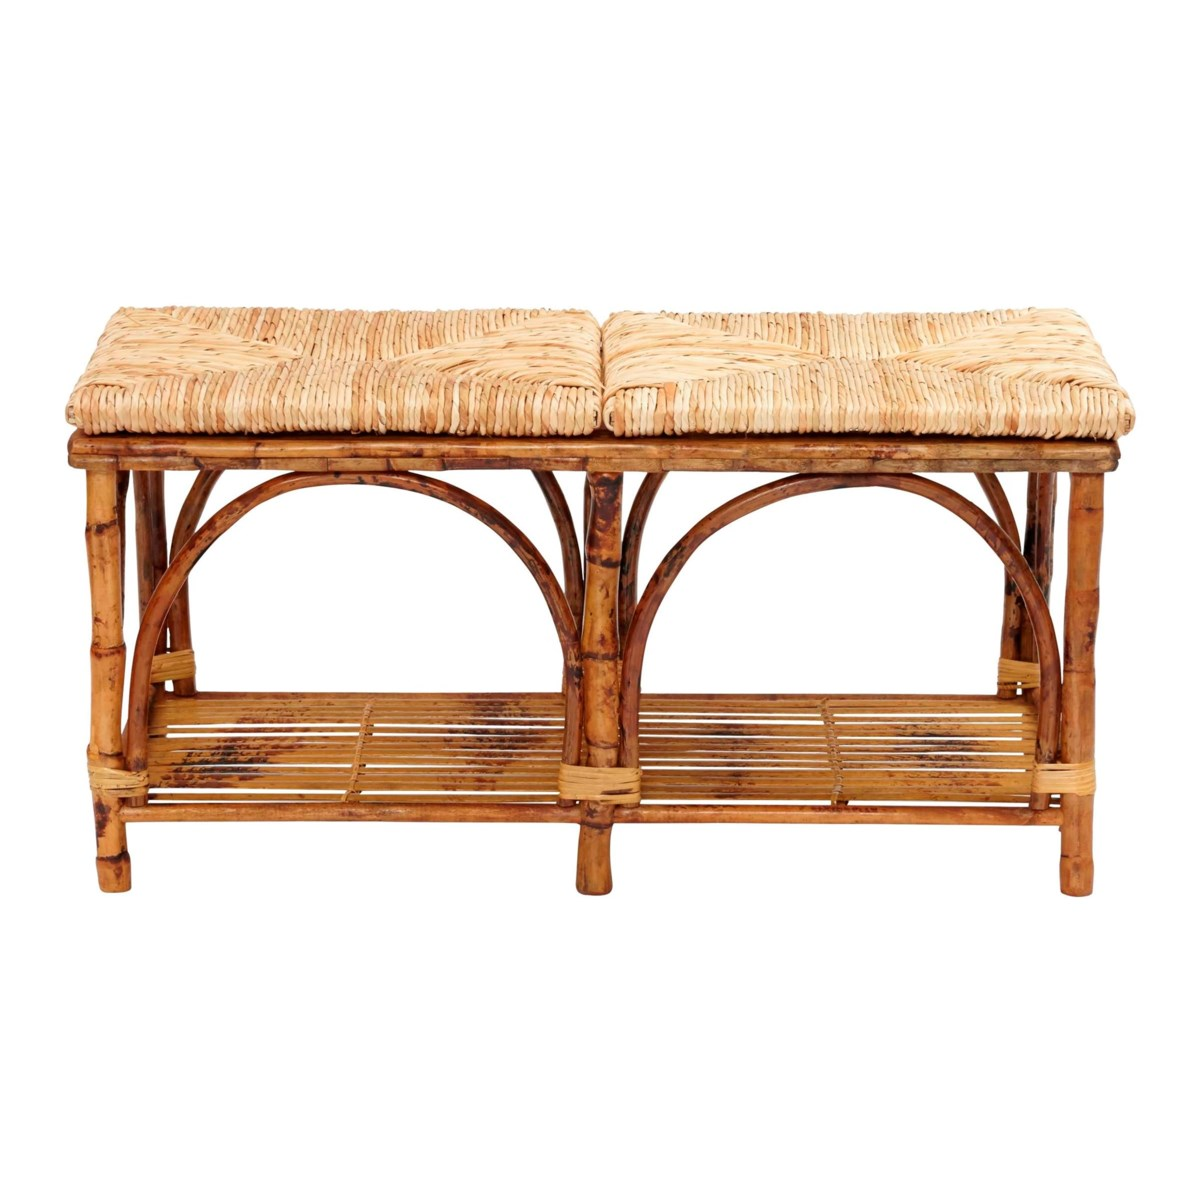 Bed Bench with Shelf Woven Rush Seat Frame Color - Tortoise